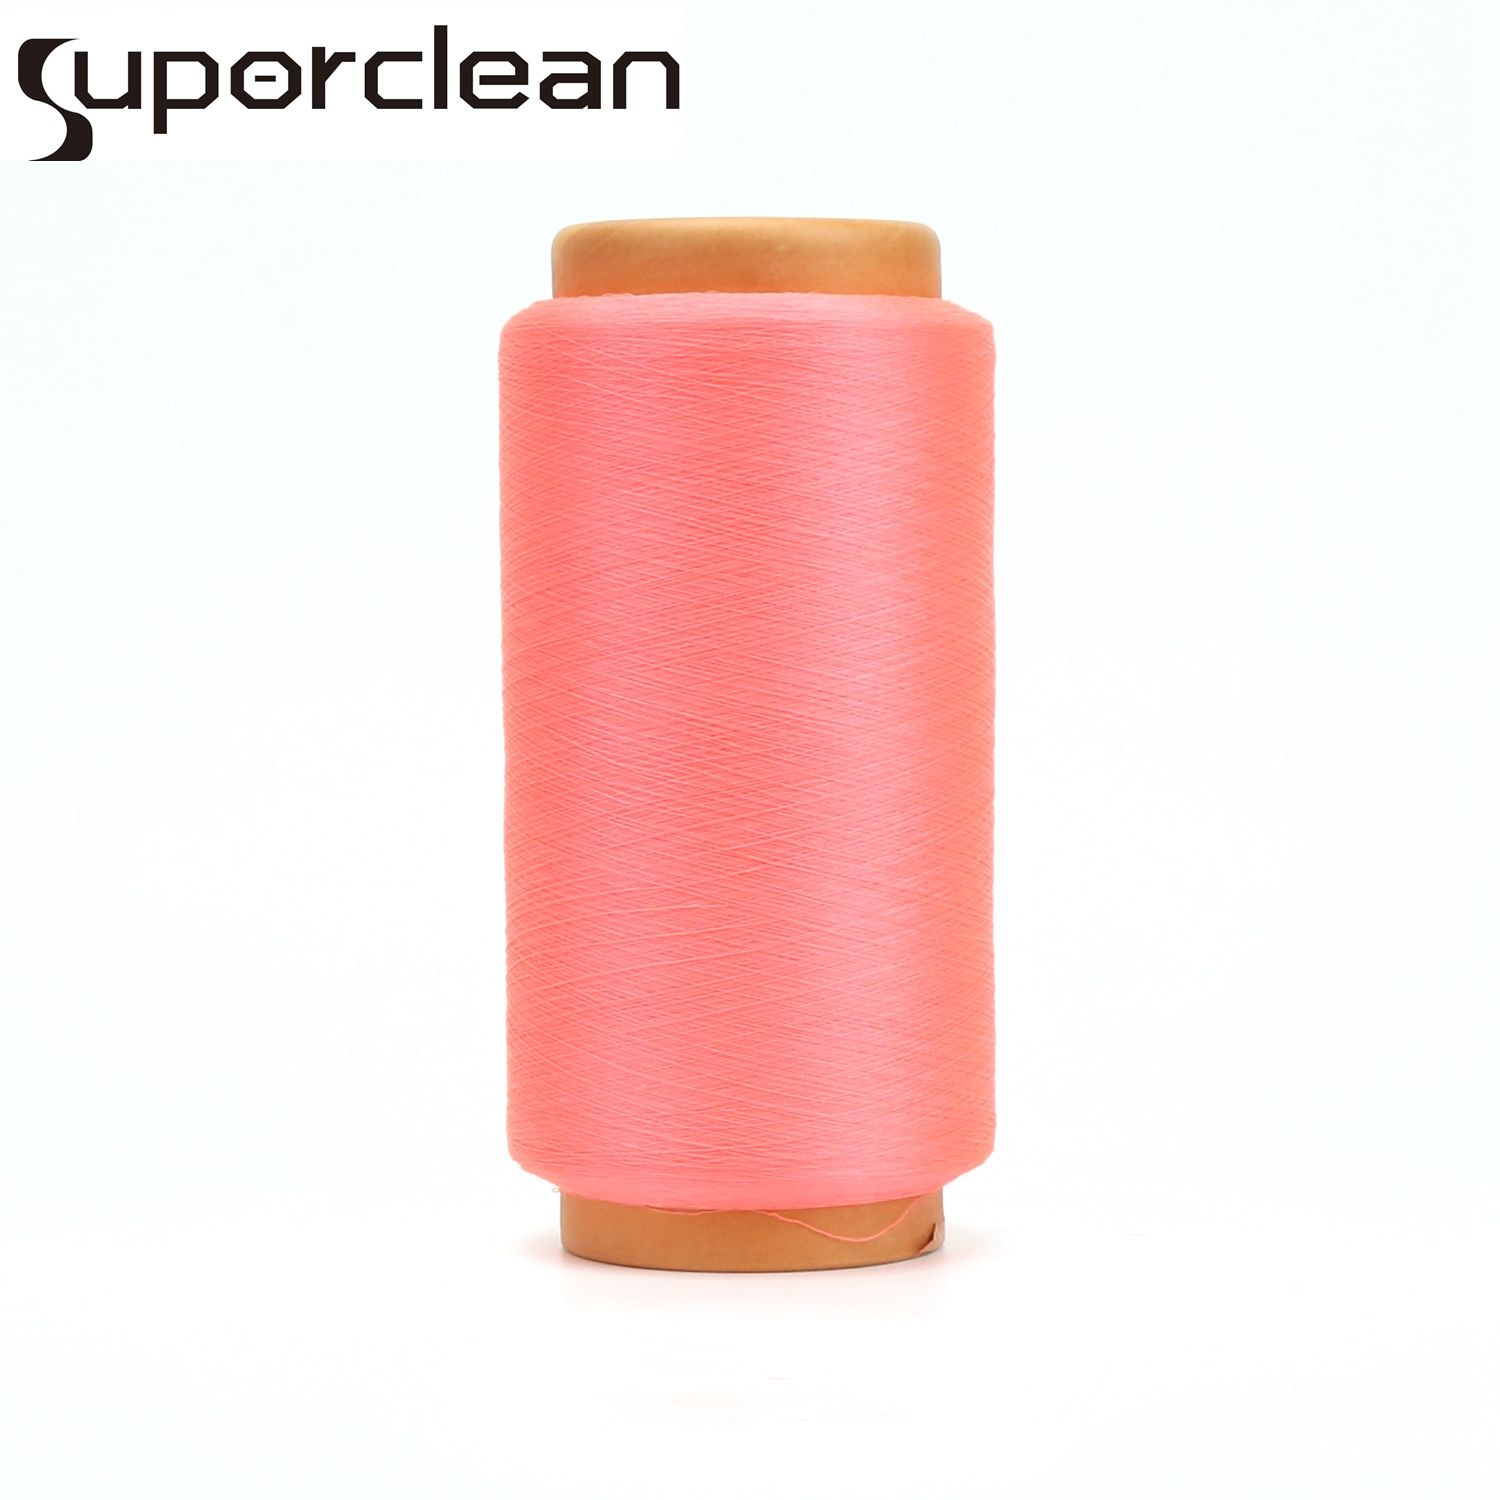 moisturizing polyester for sock manufacturers of making socks sports